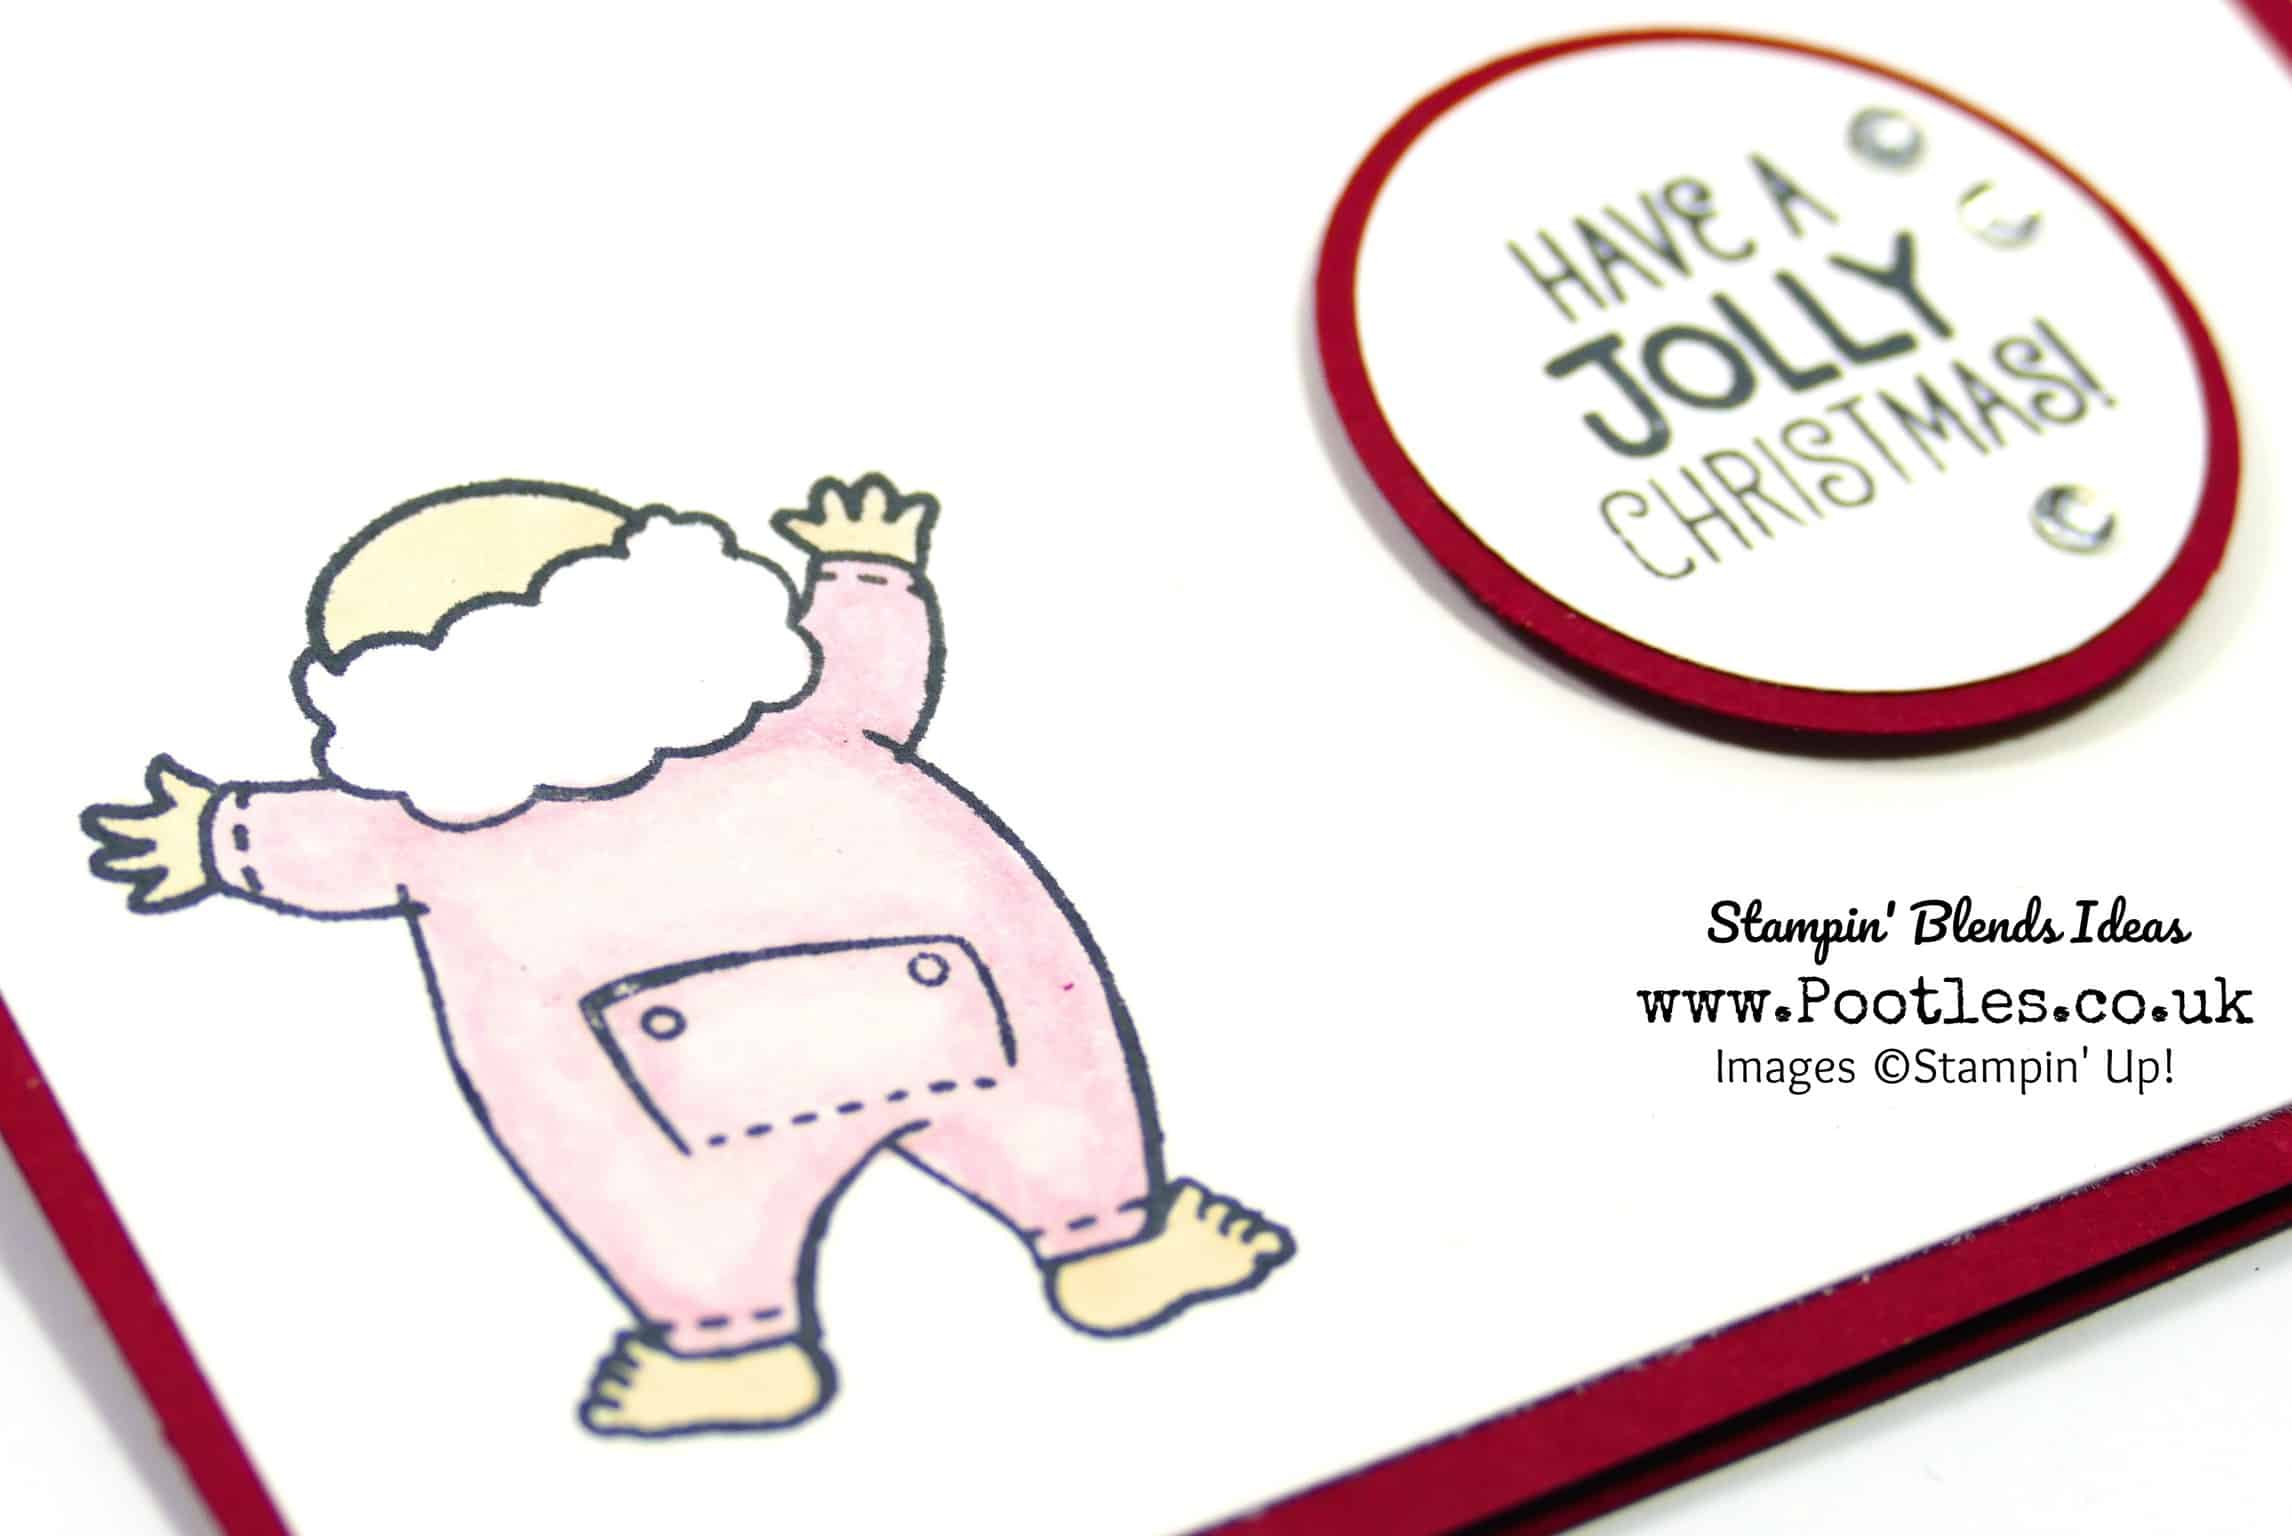 Santa's Suit, Blends and Pink Long-Johns!